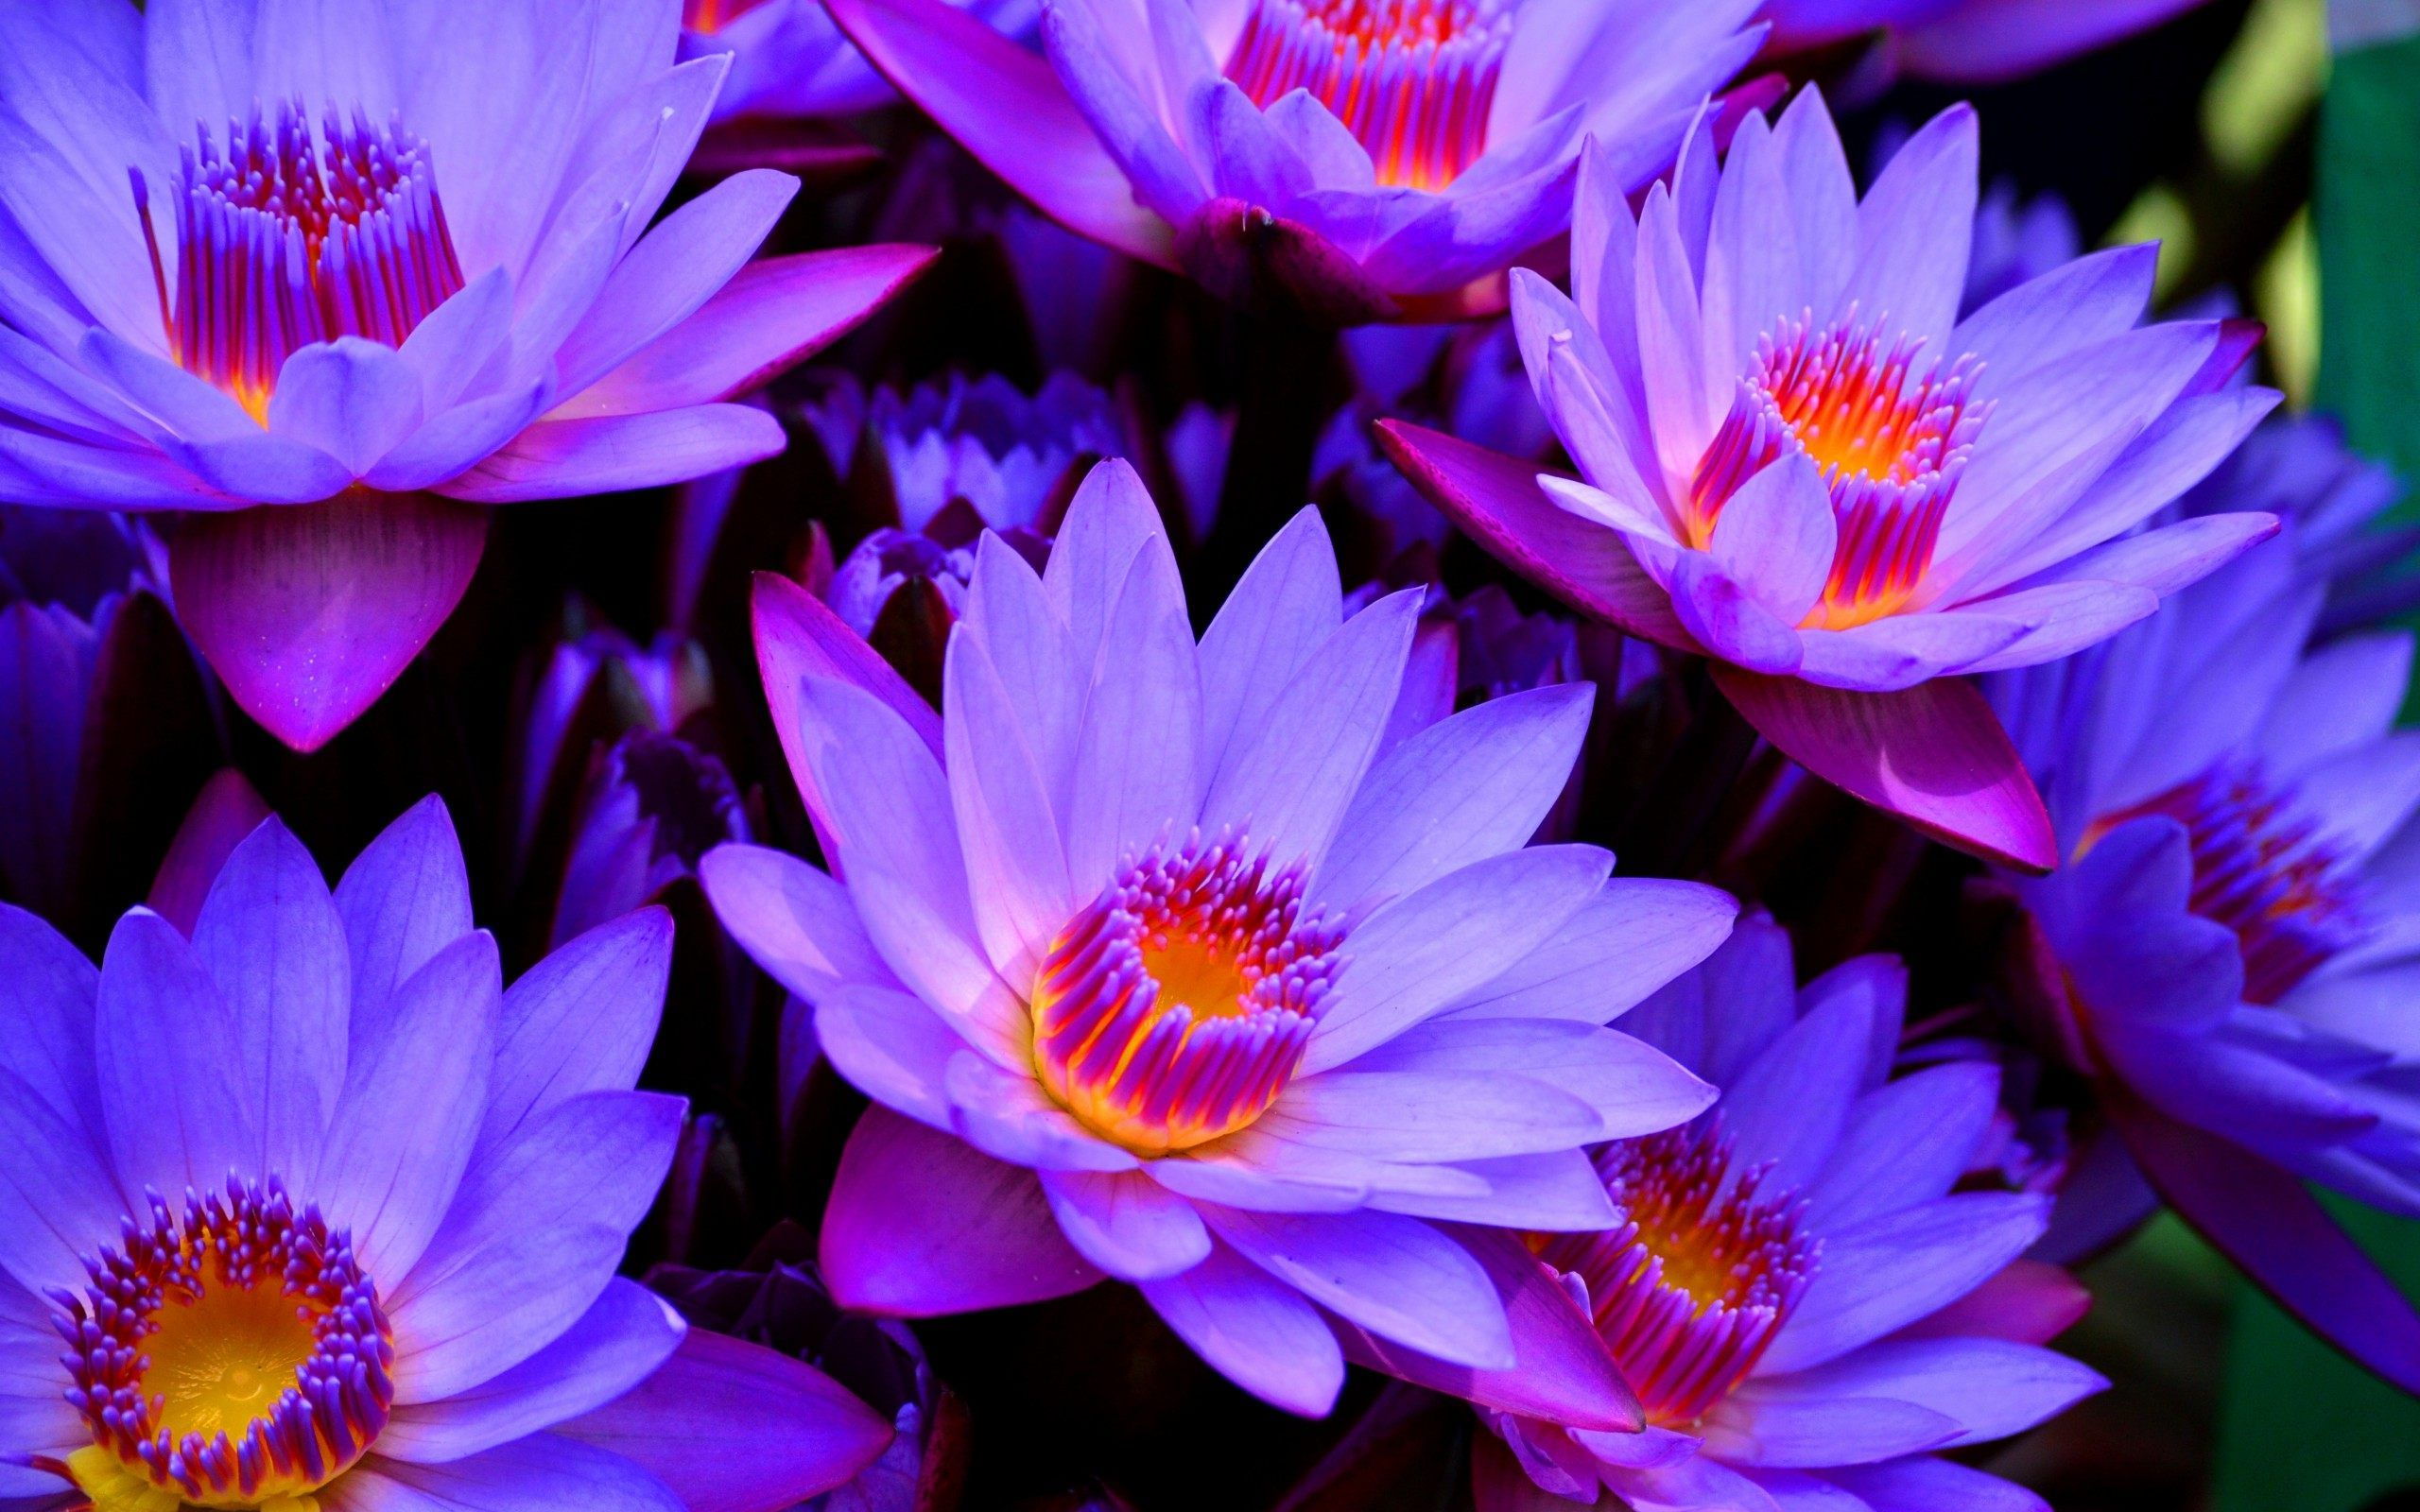 Lotus Flower Wallpapers Wide Free Download > SubWallpaper